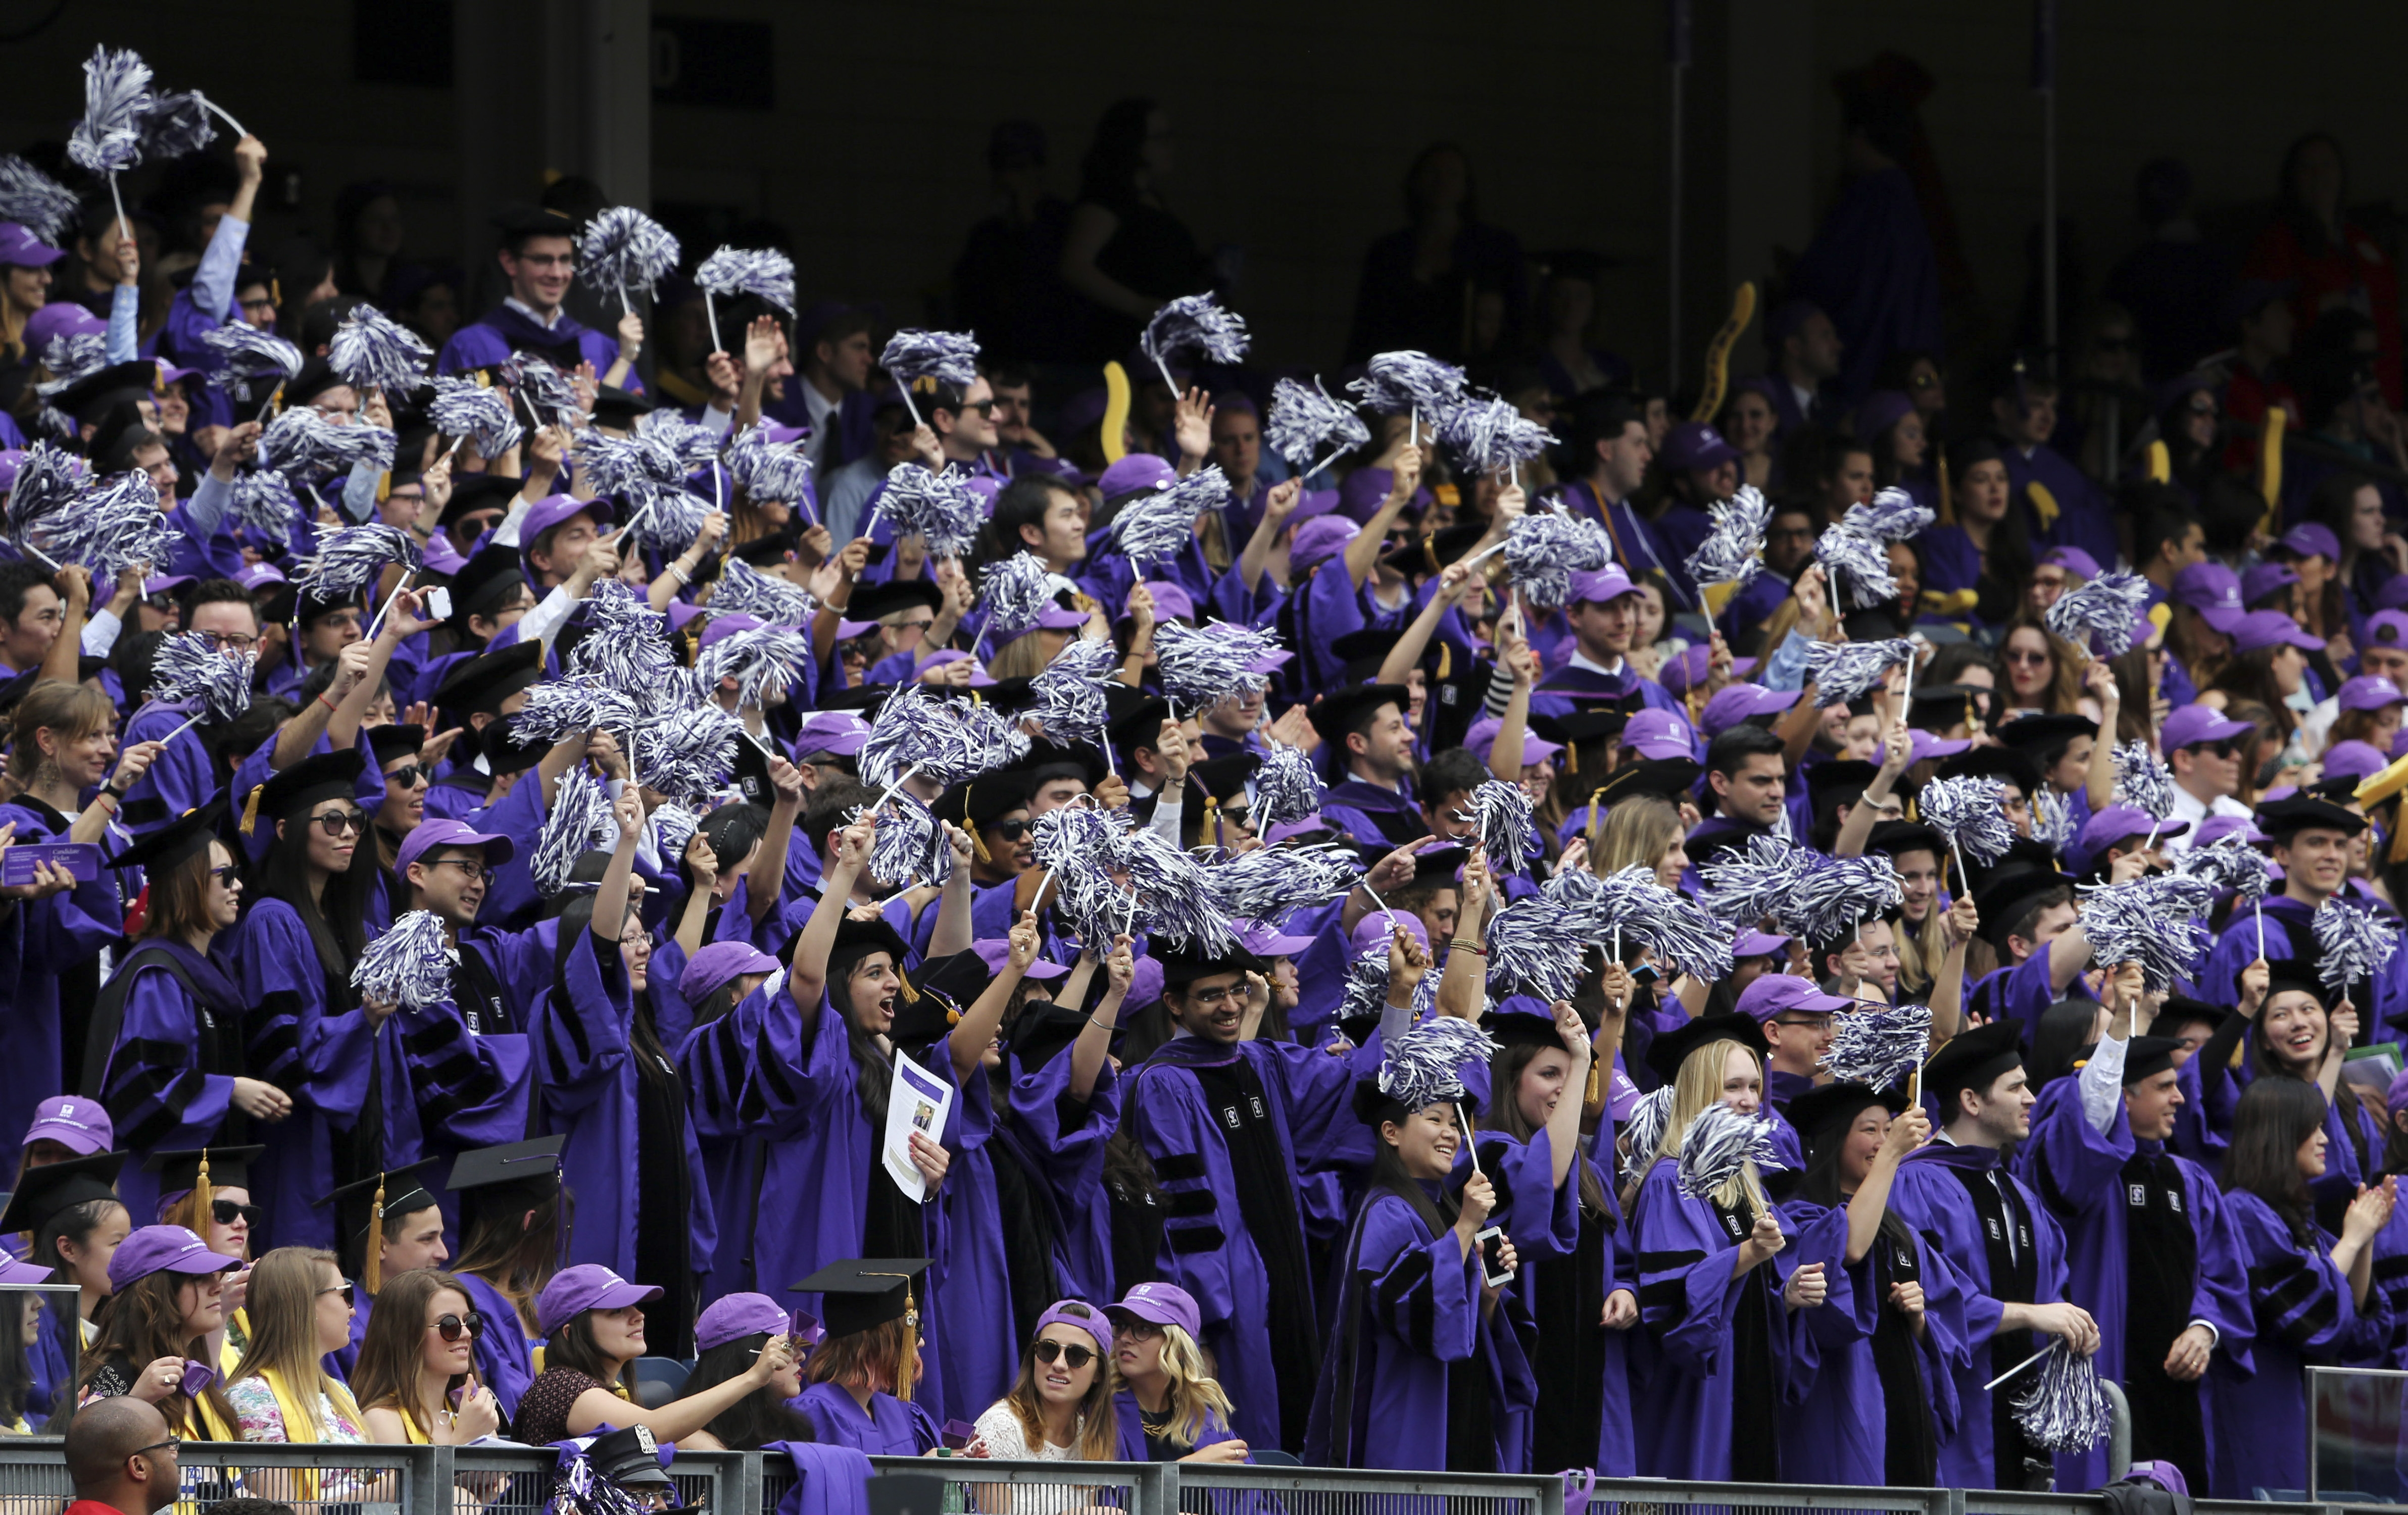 FILE -- New York University students celebrate graduation at Yankee Stadium in New York, May 22, 2014. Student loans recently surpassed credit cards as the third-largest form of household debt.  (Richard Perry/The New York Times) -- PHOTO MOVED IN ADVANCE AND NOT FOR USE - ONLINE OR IN PRINT - BEFORE JUNE 15, 2014.